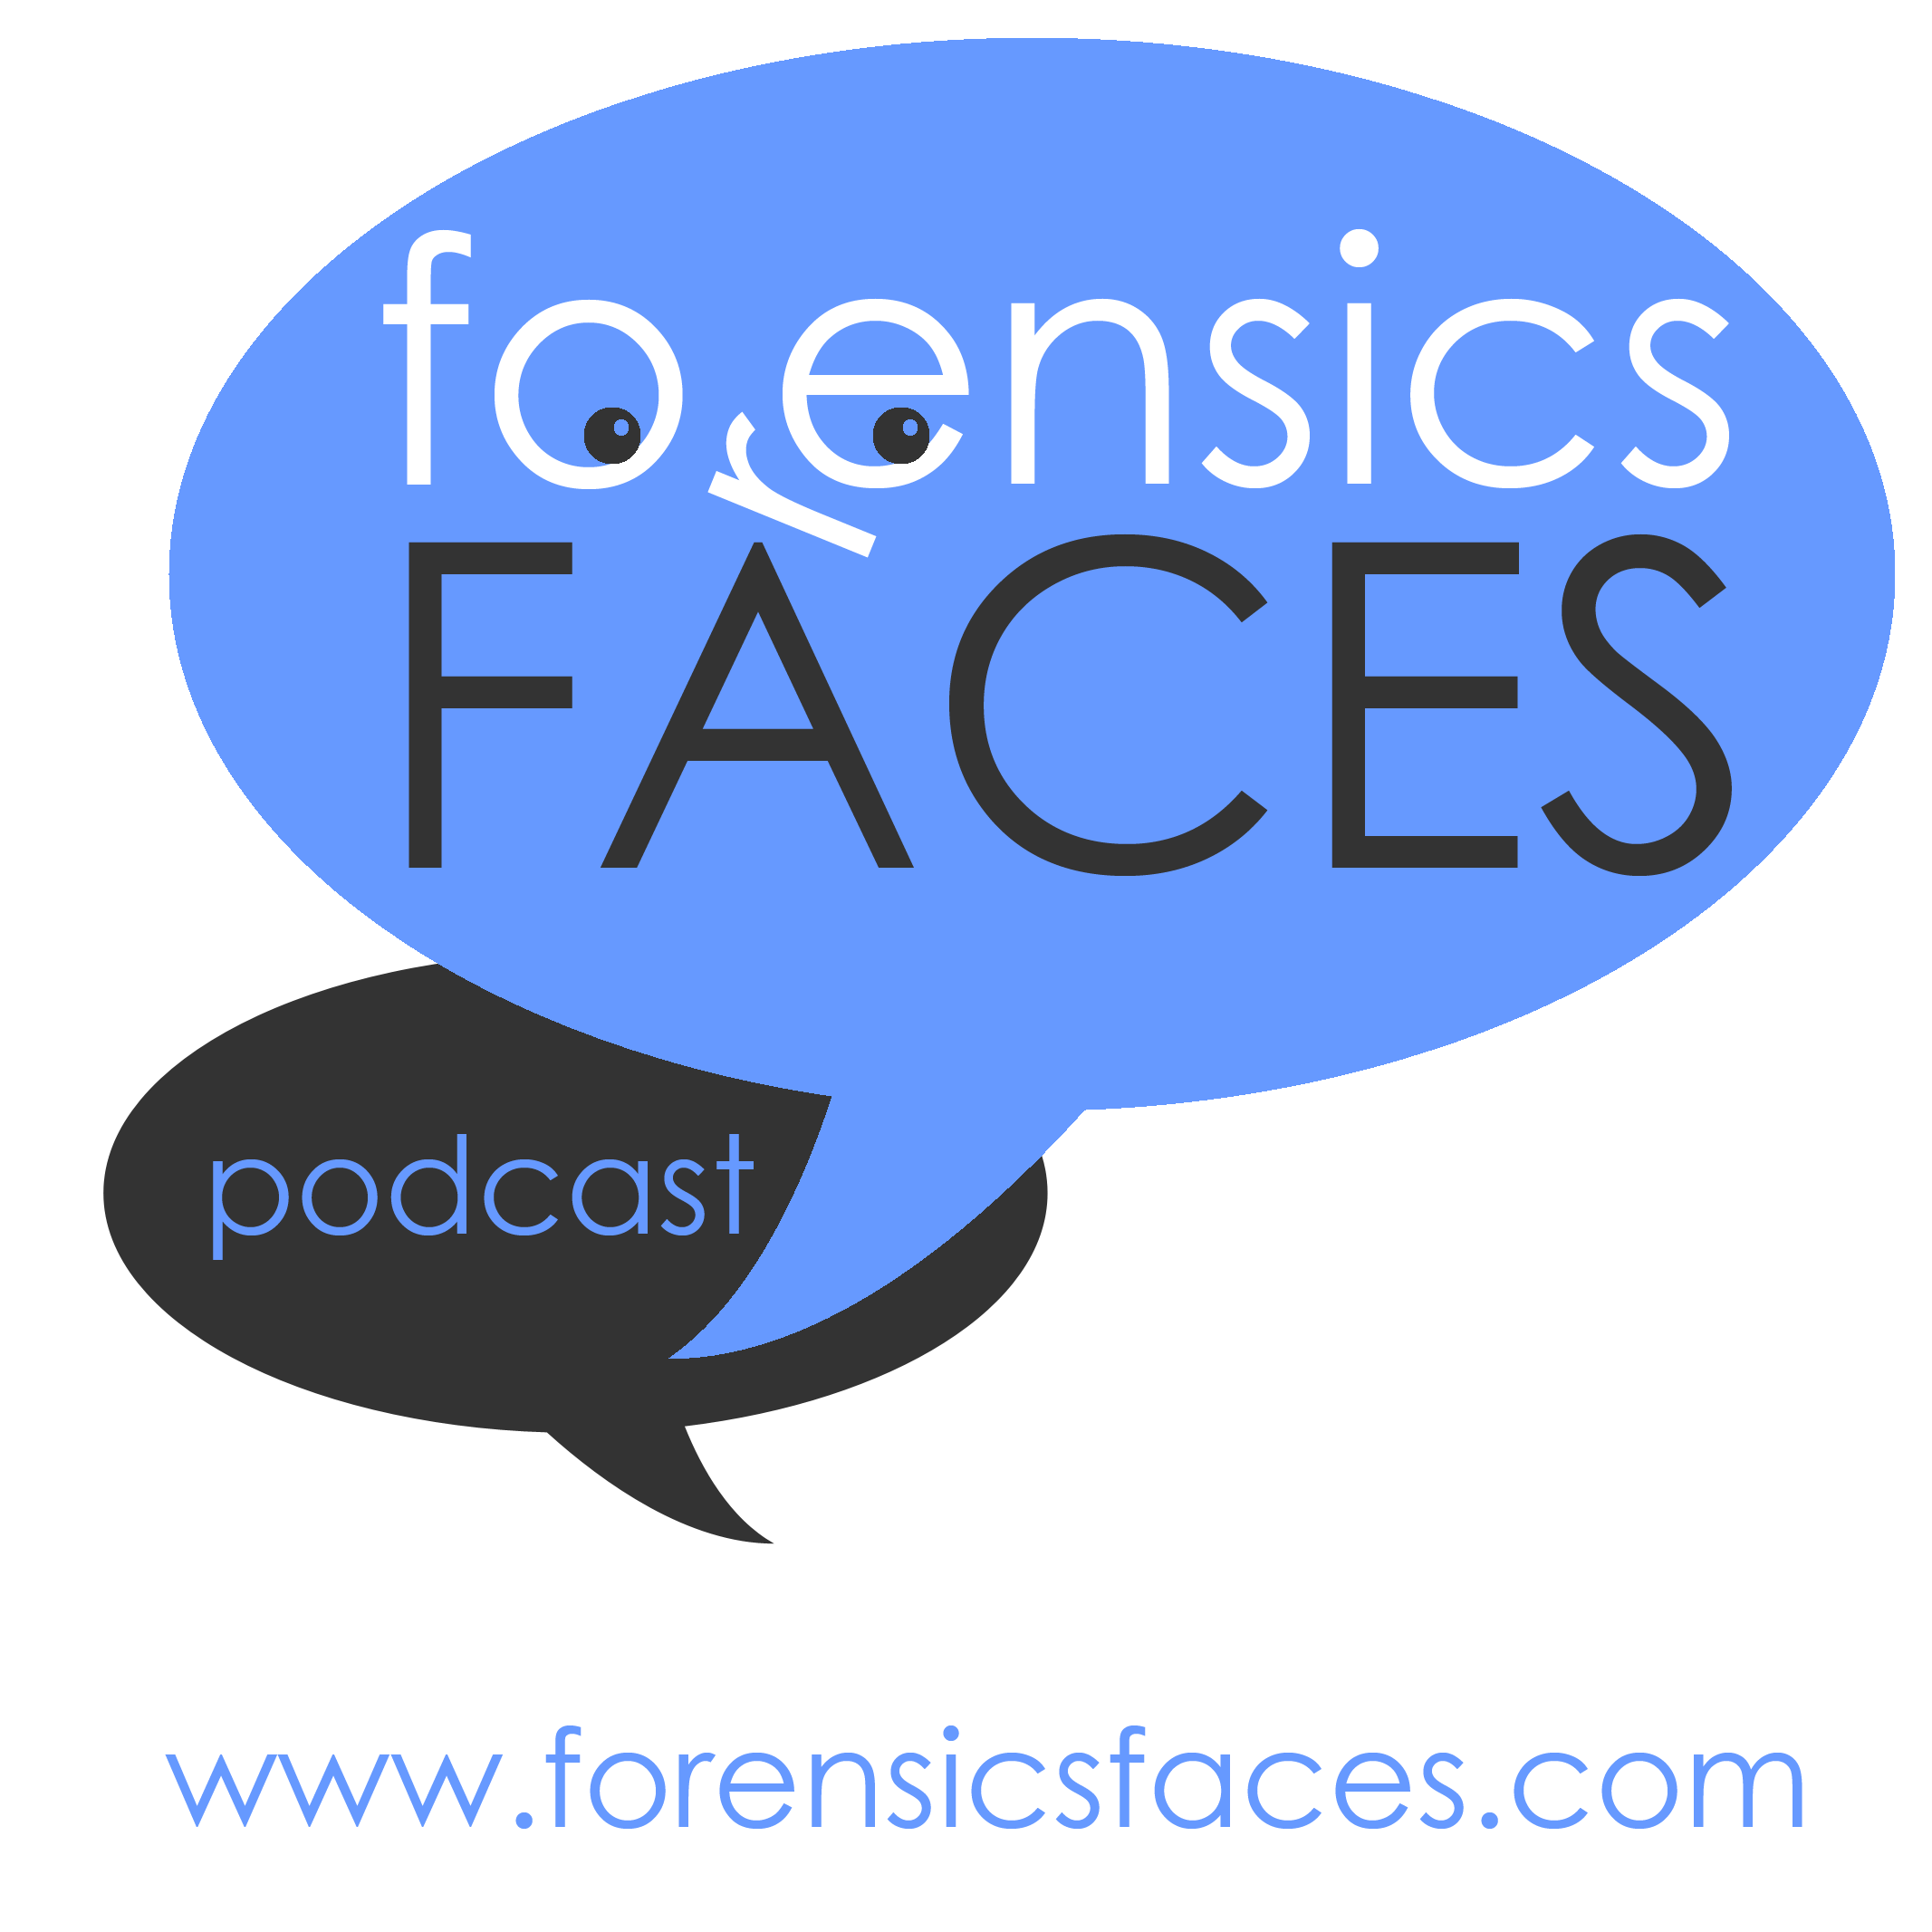 Debate clipart forensic speech. Forensics faces forensicsfaces twitter